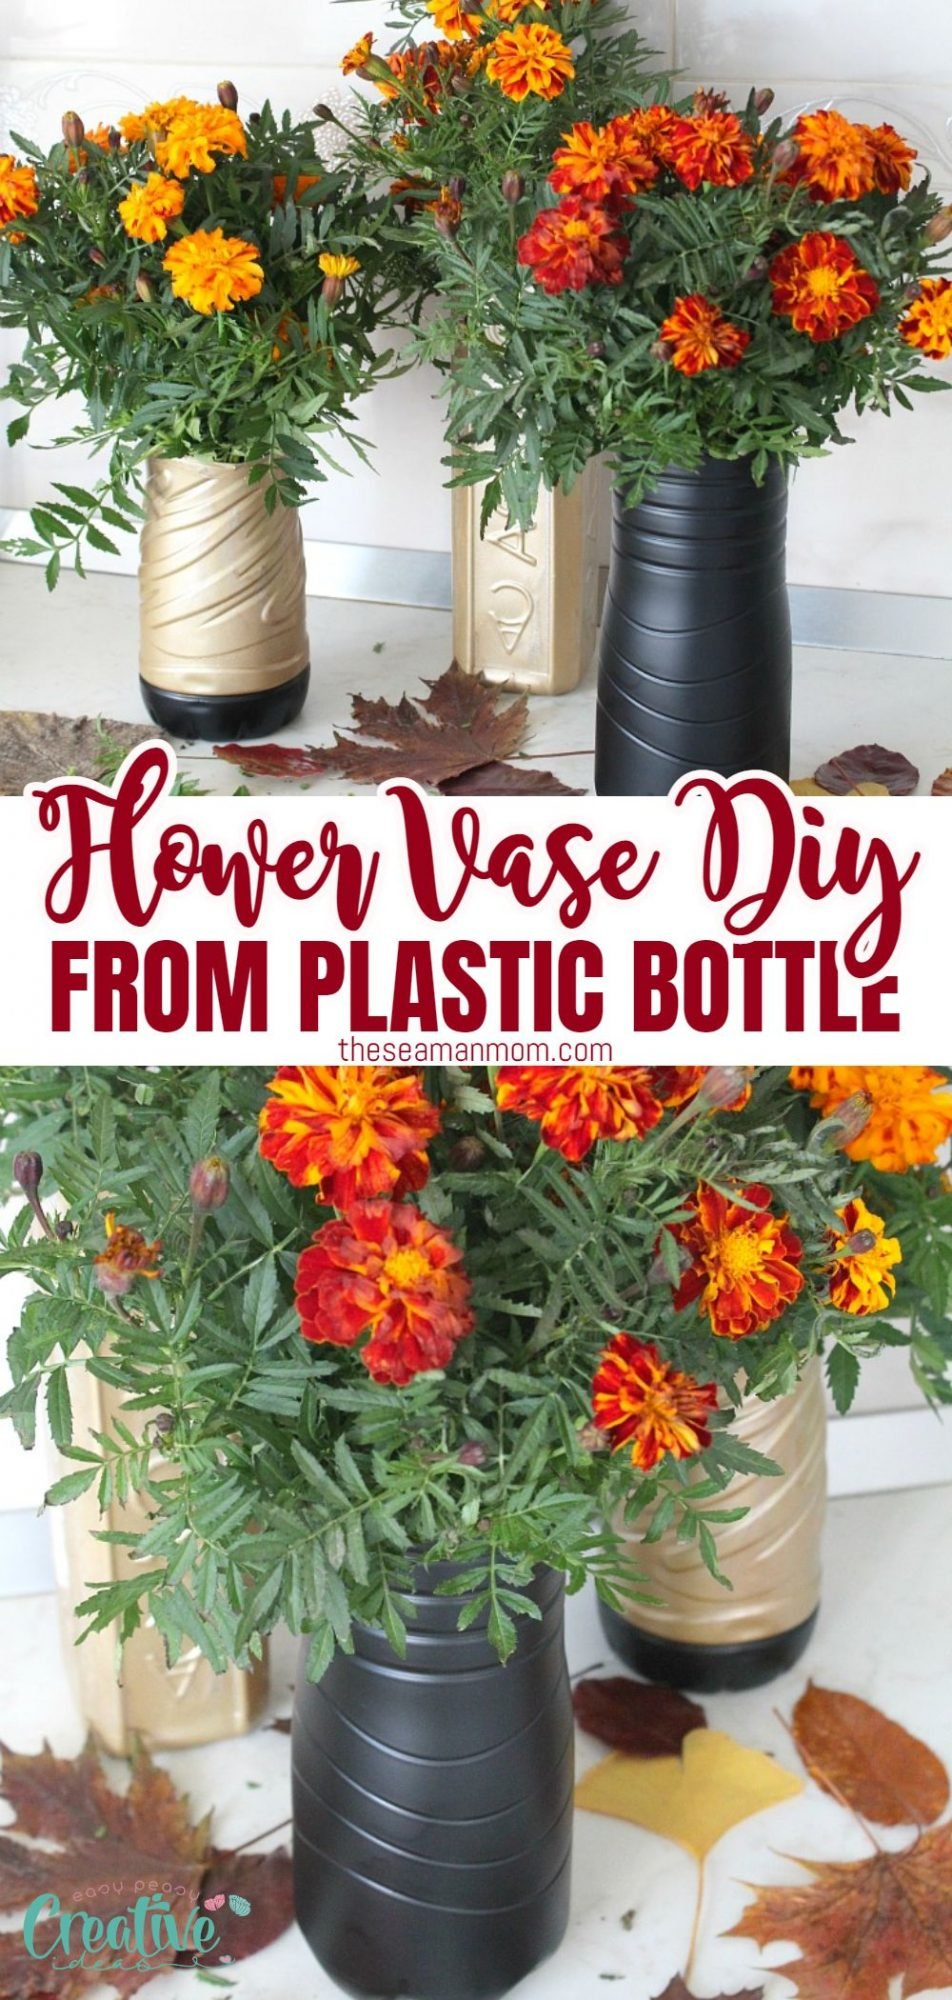 Photo collage of plastic flower vase made with recycled water bottles